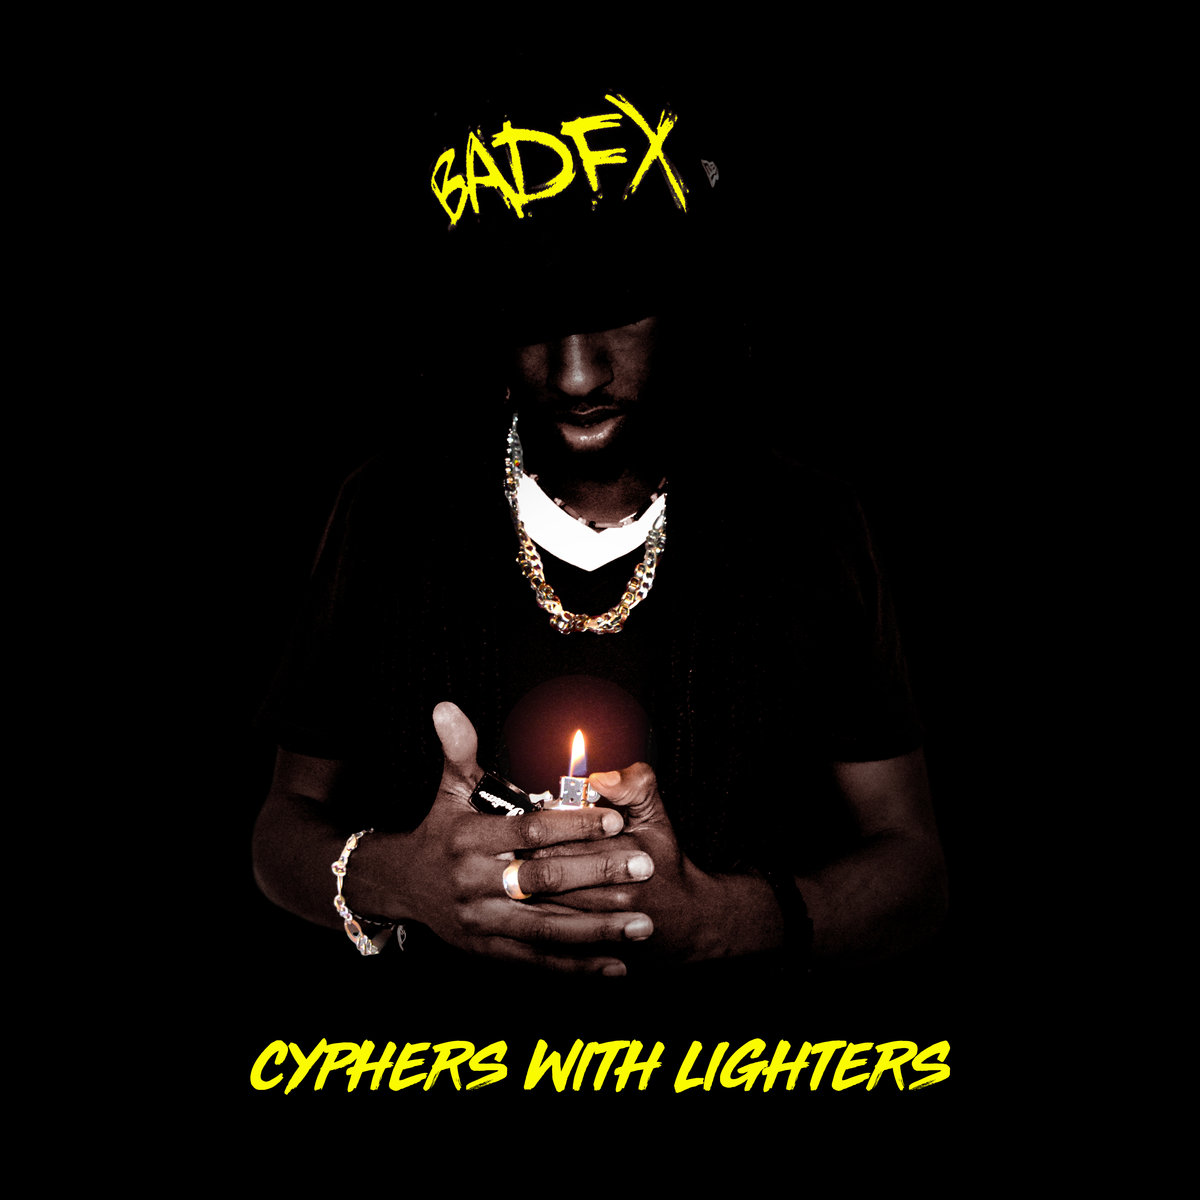 Bad_fx_cyphers_with_lighters